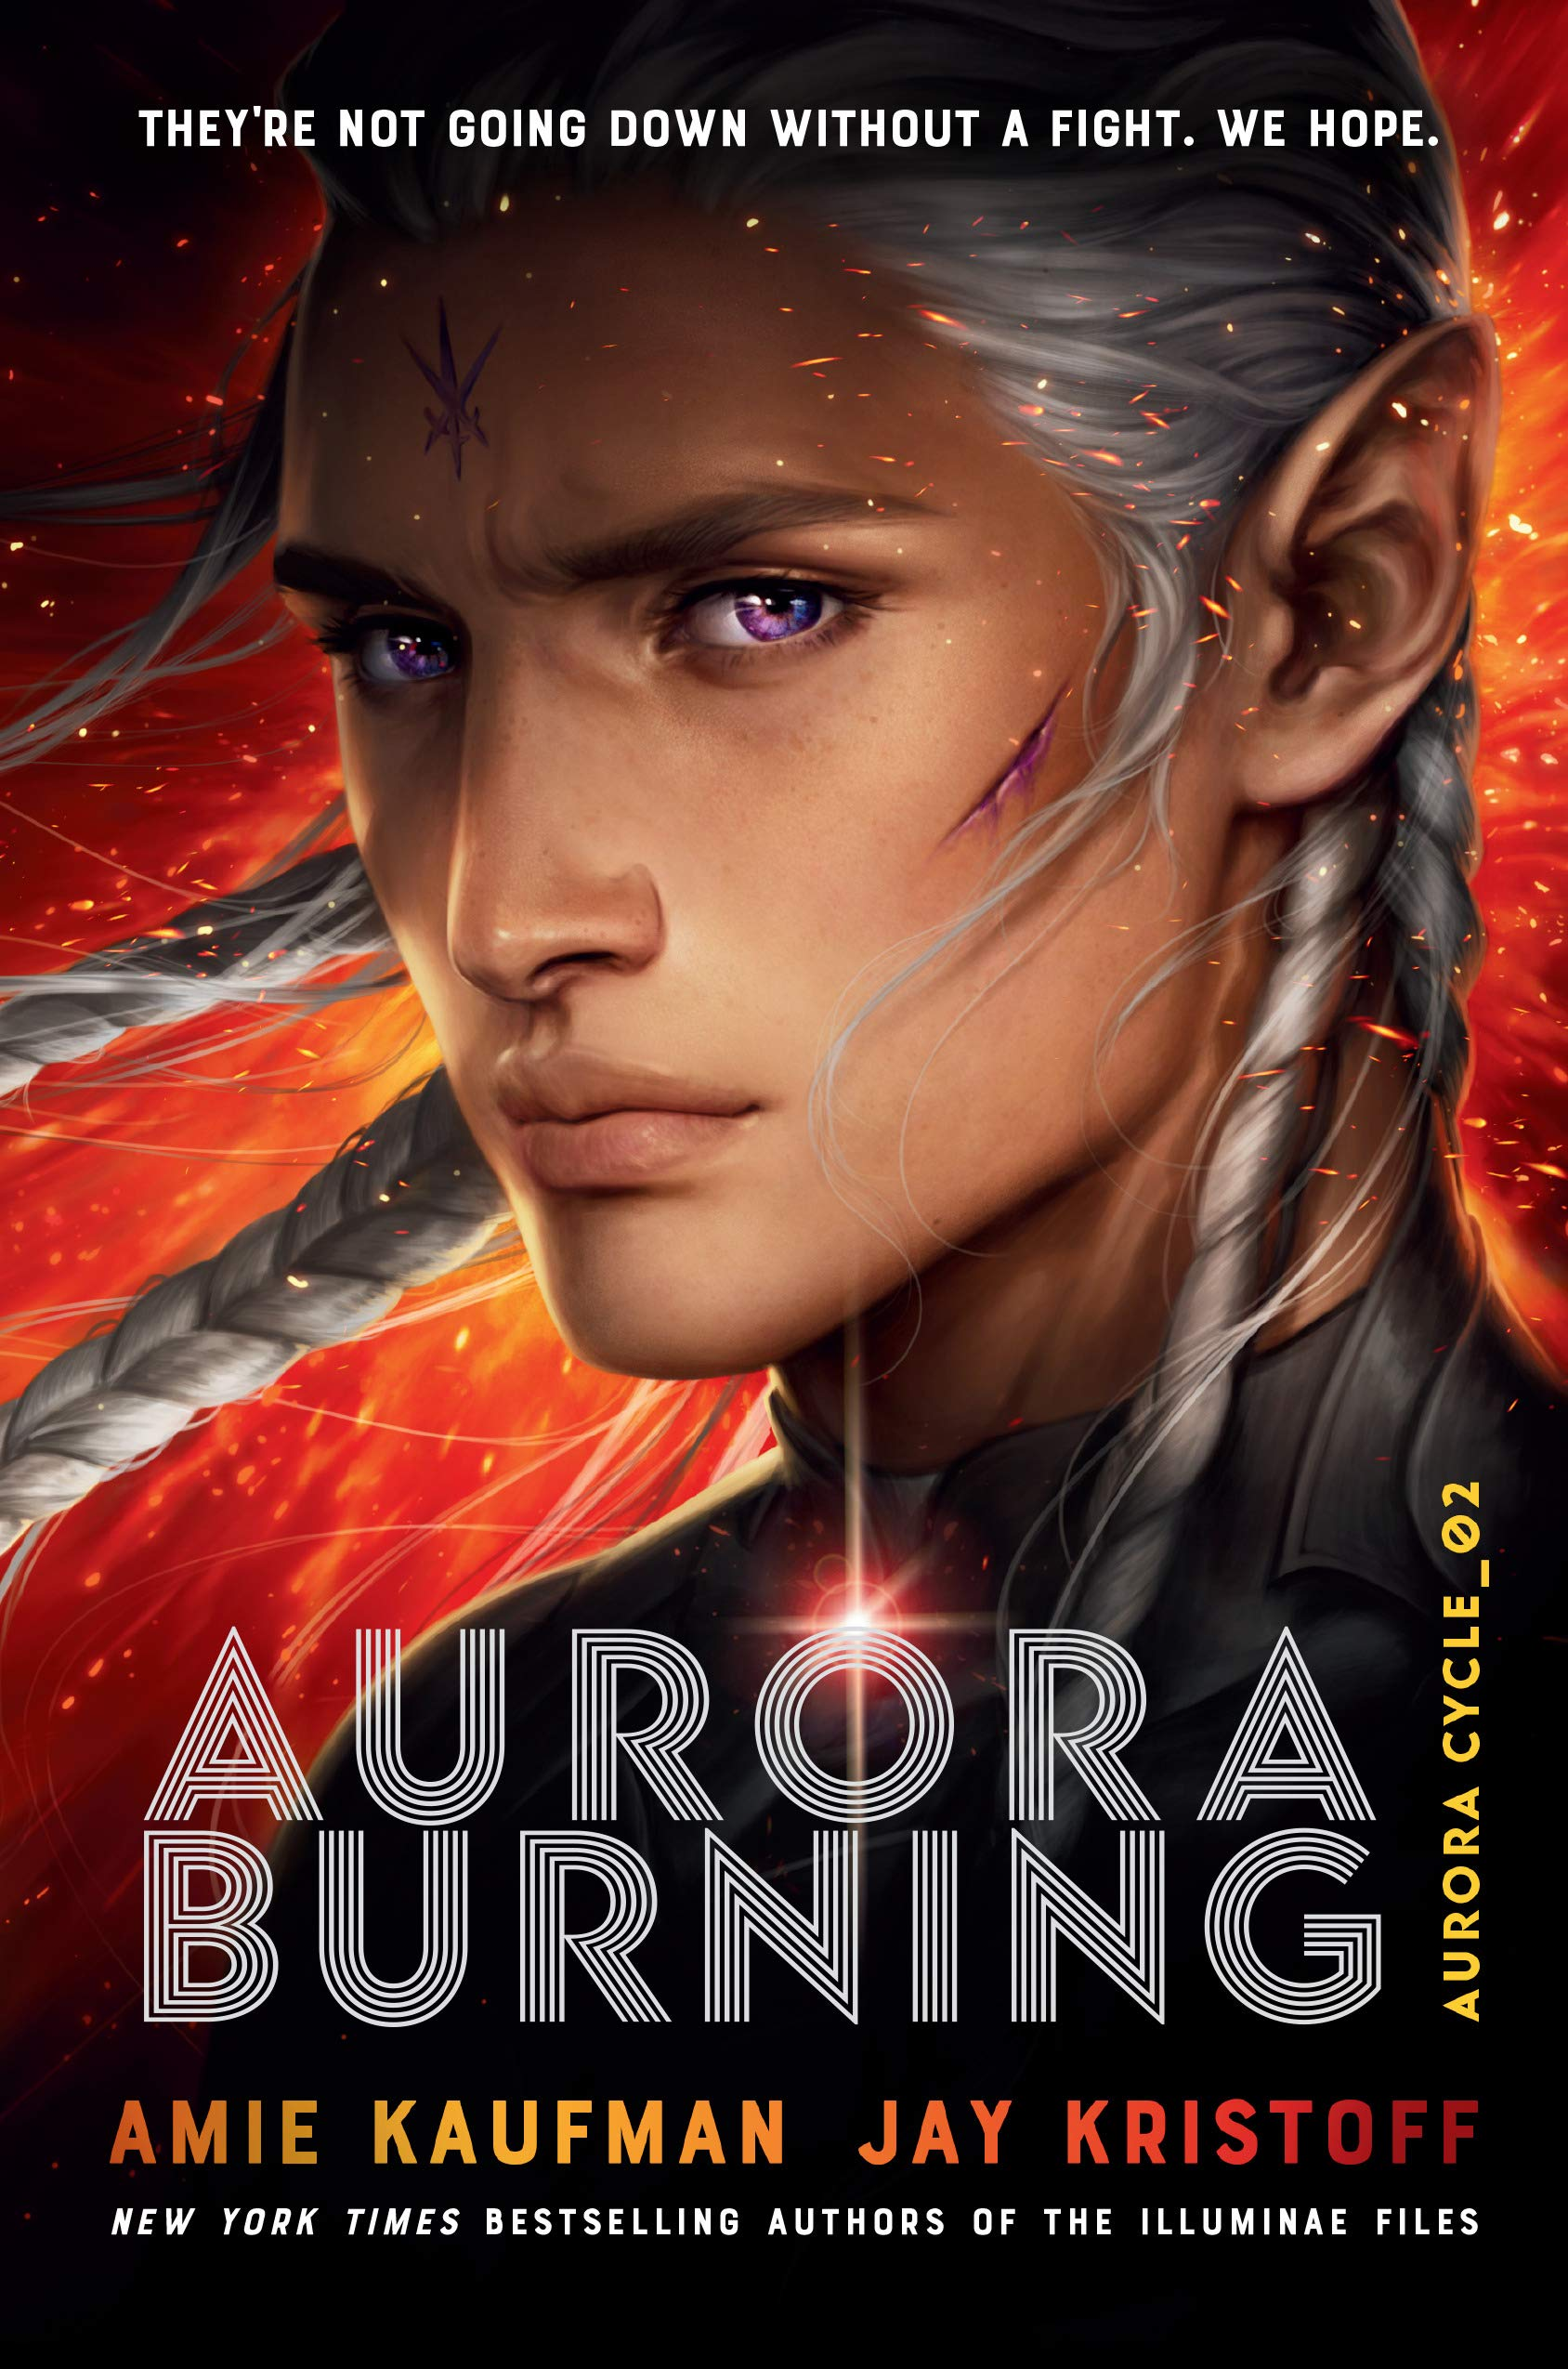 Aurora Burning by Amie Kaufman, Jay Kristoff